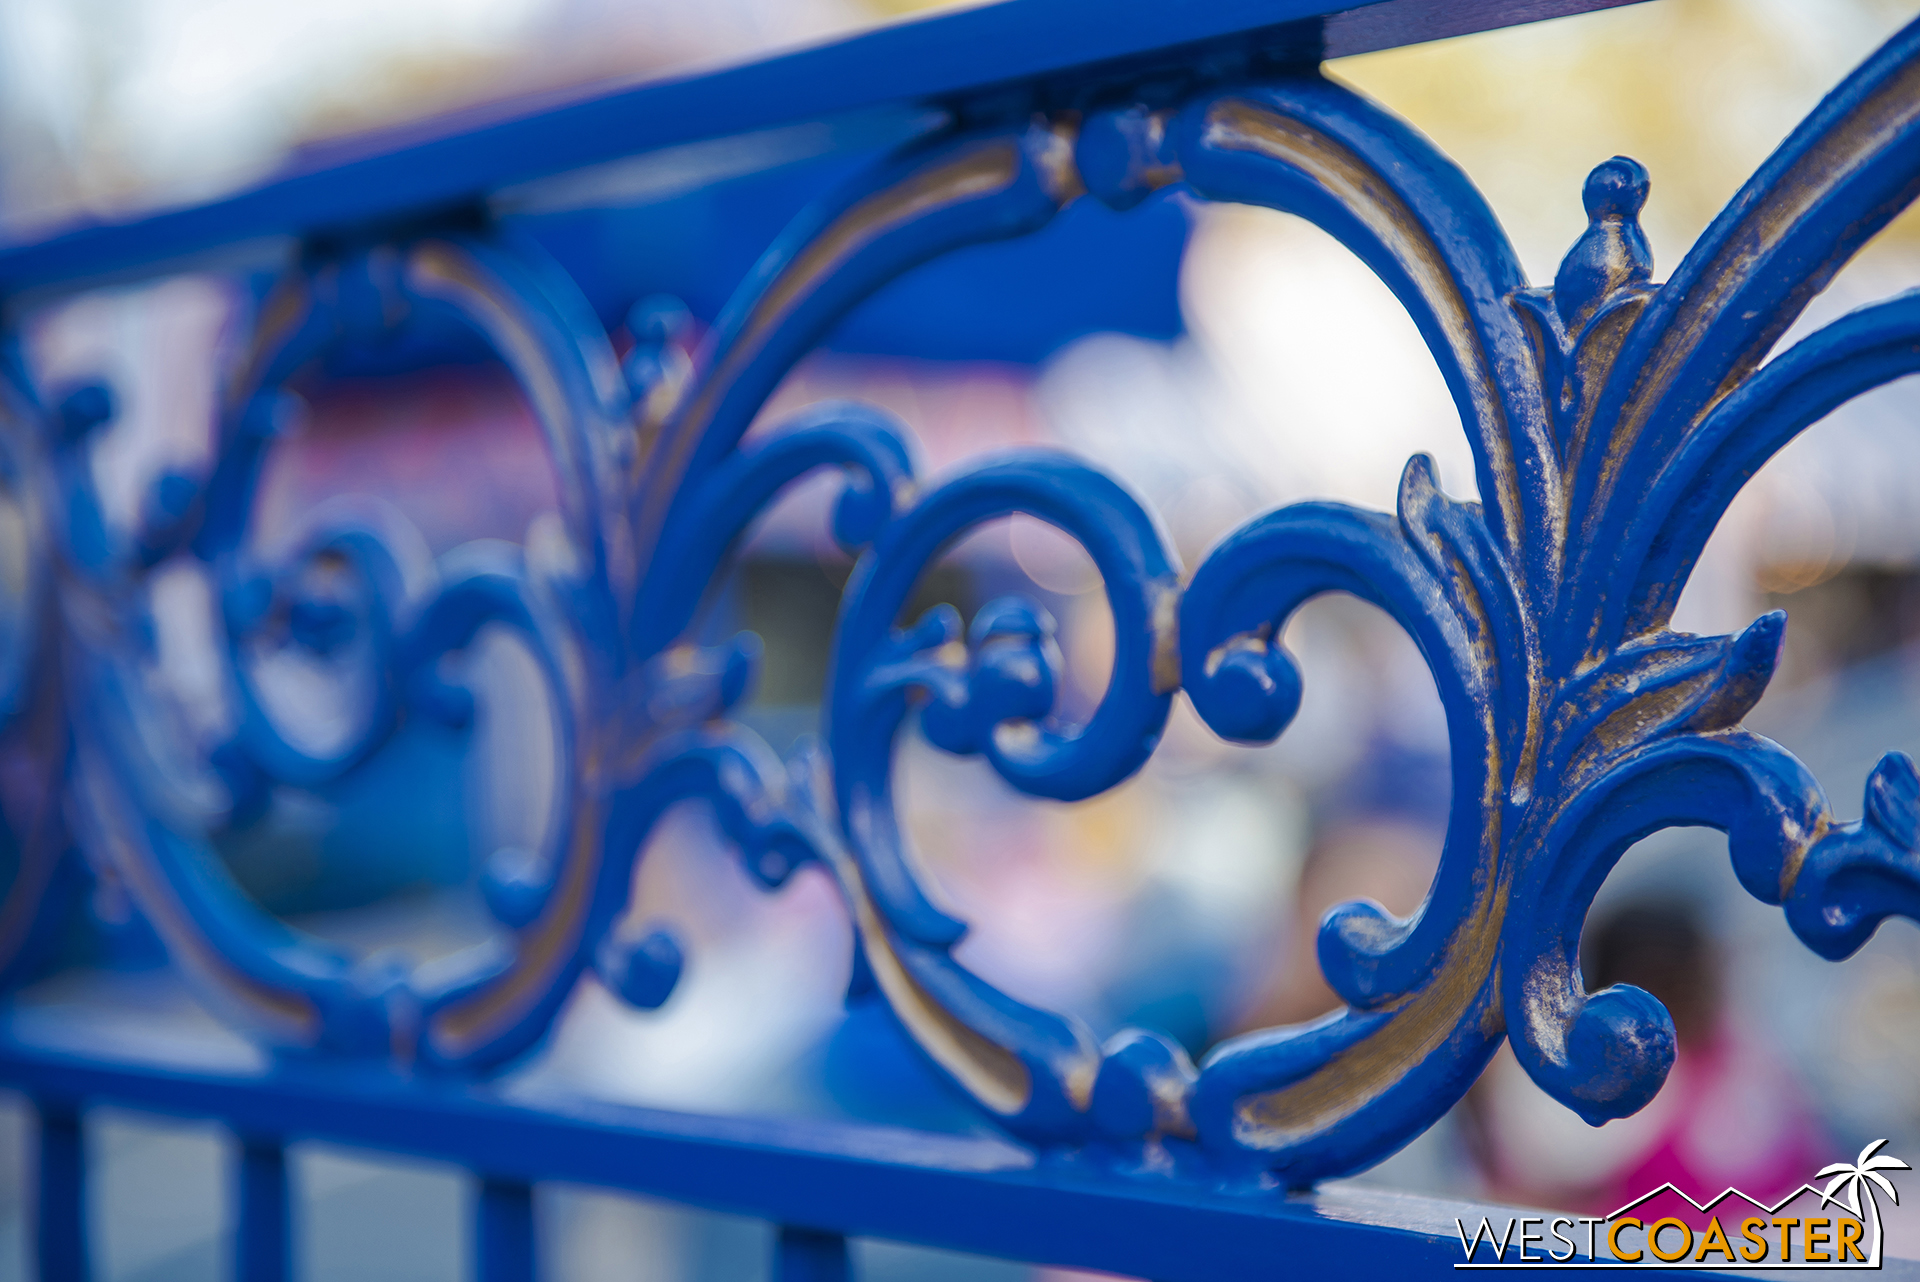 The railings have been repainted but aged a bit.